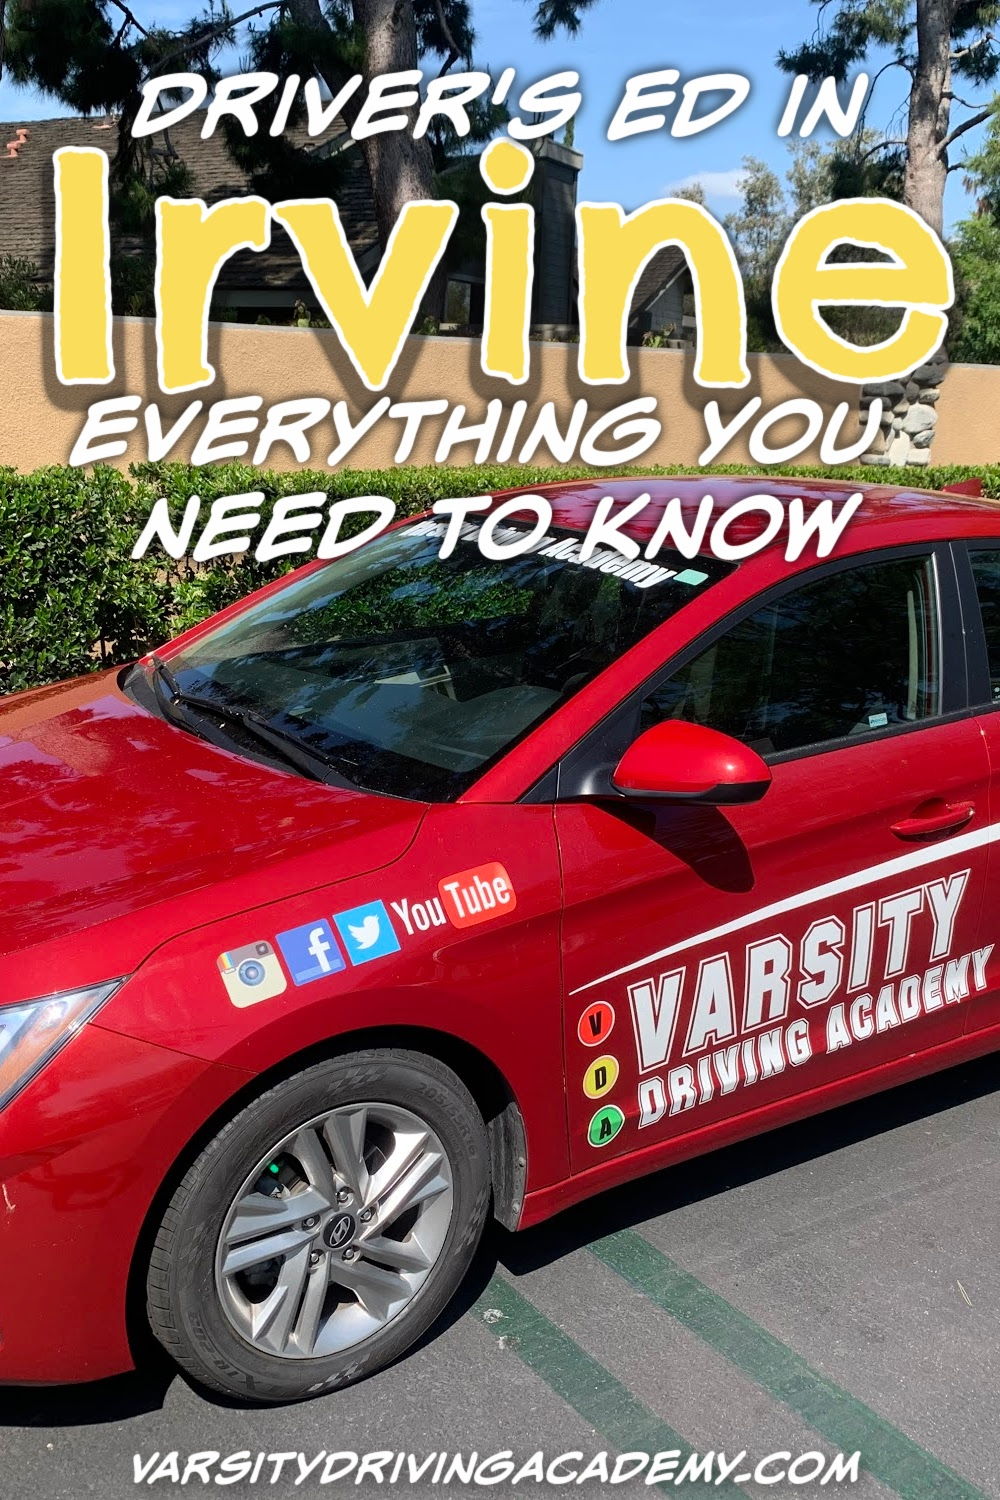 There are a few Irvine drivers ed resources you can utilize to get started learning how to drive and how to be a safe driver in Irvine.